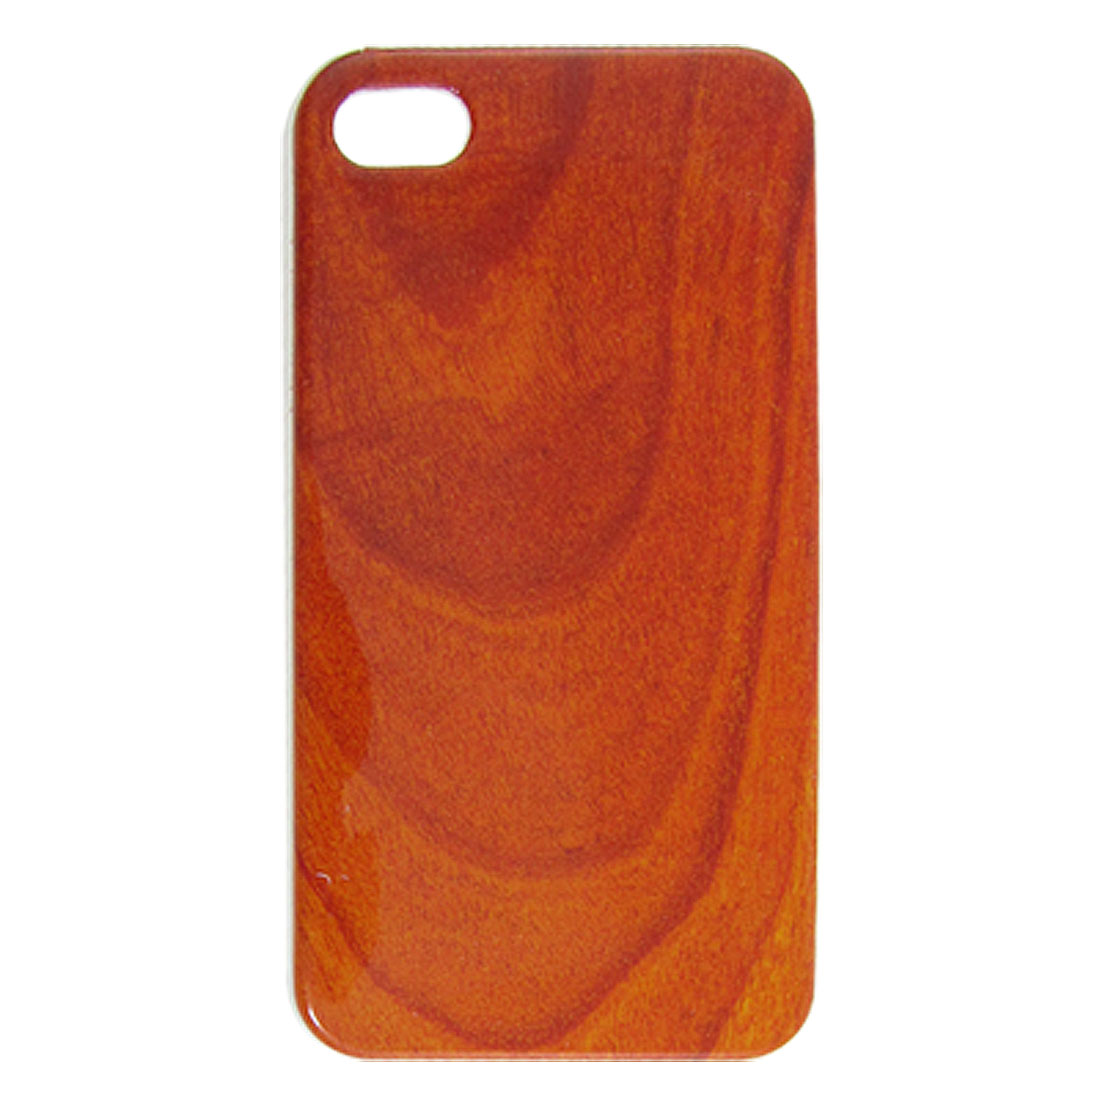 IMD Wood Pattern Hard Plastic Back Case Cover for iPhone 4 4G 4S